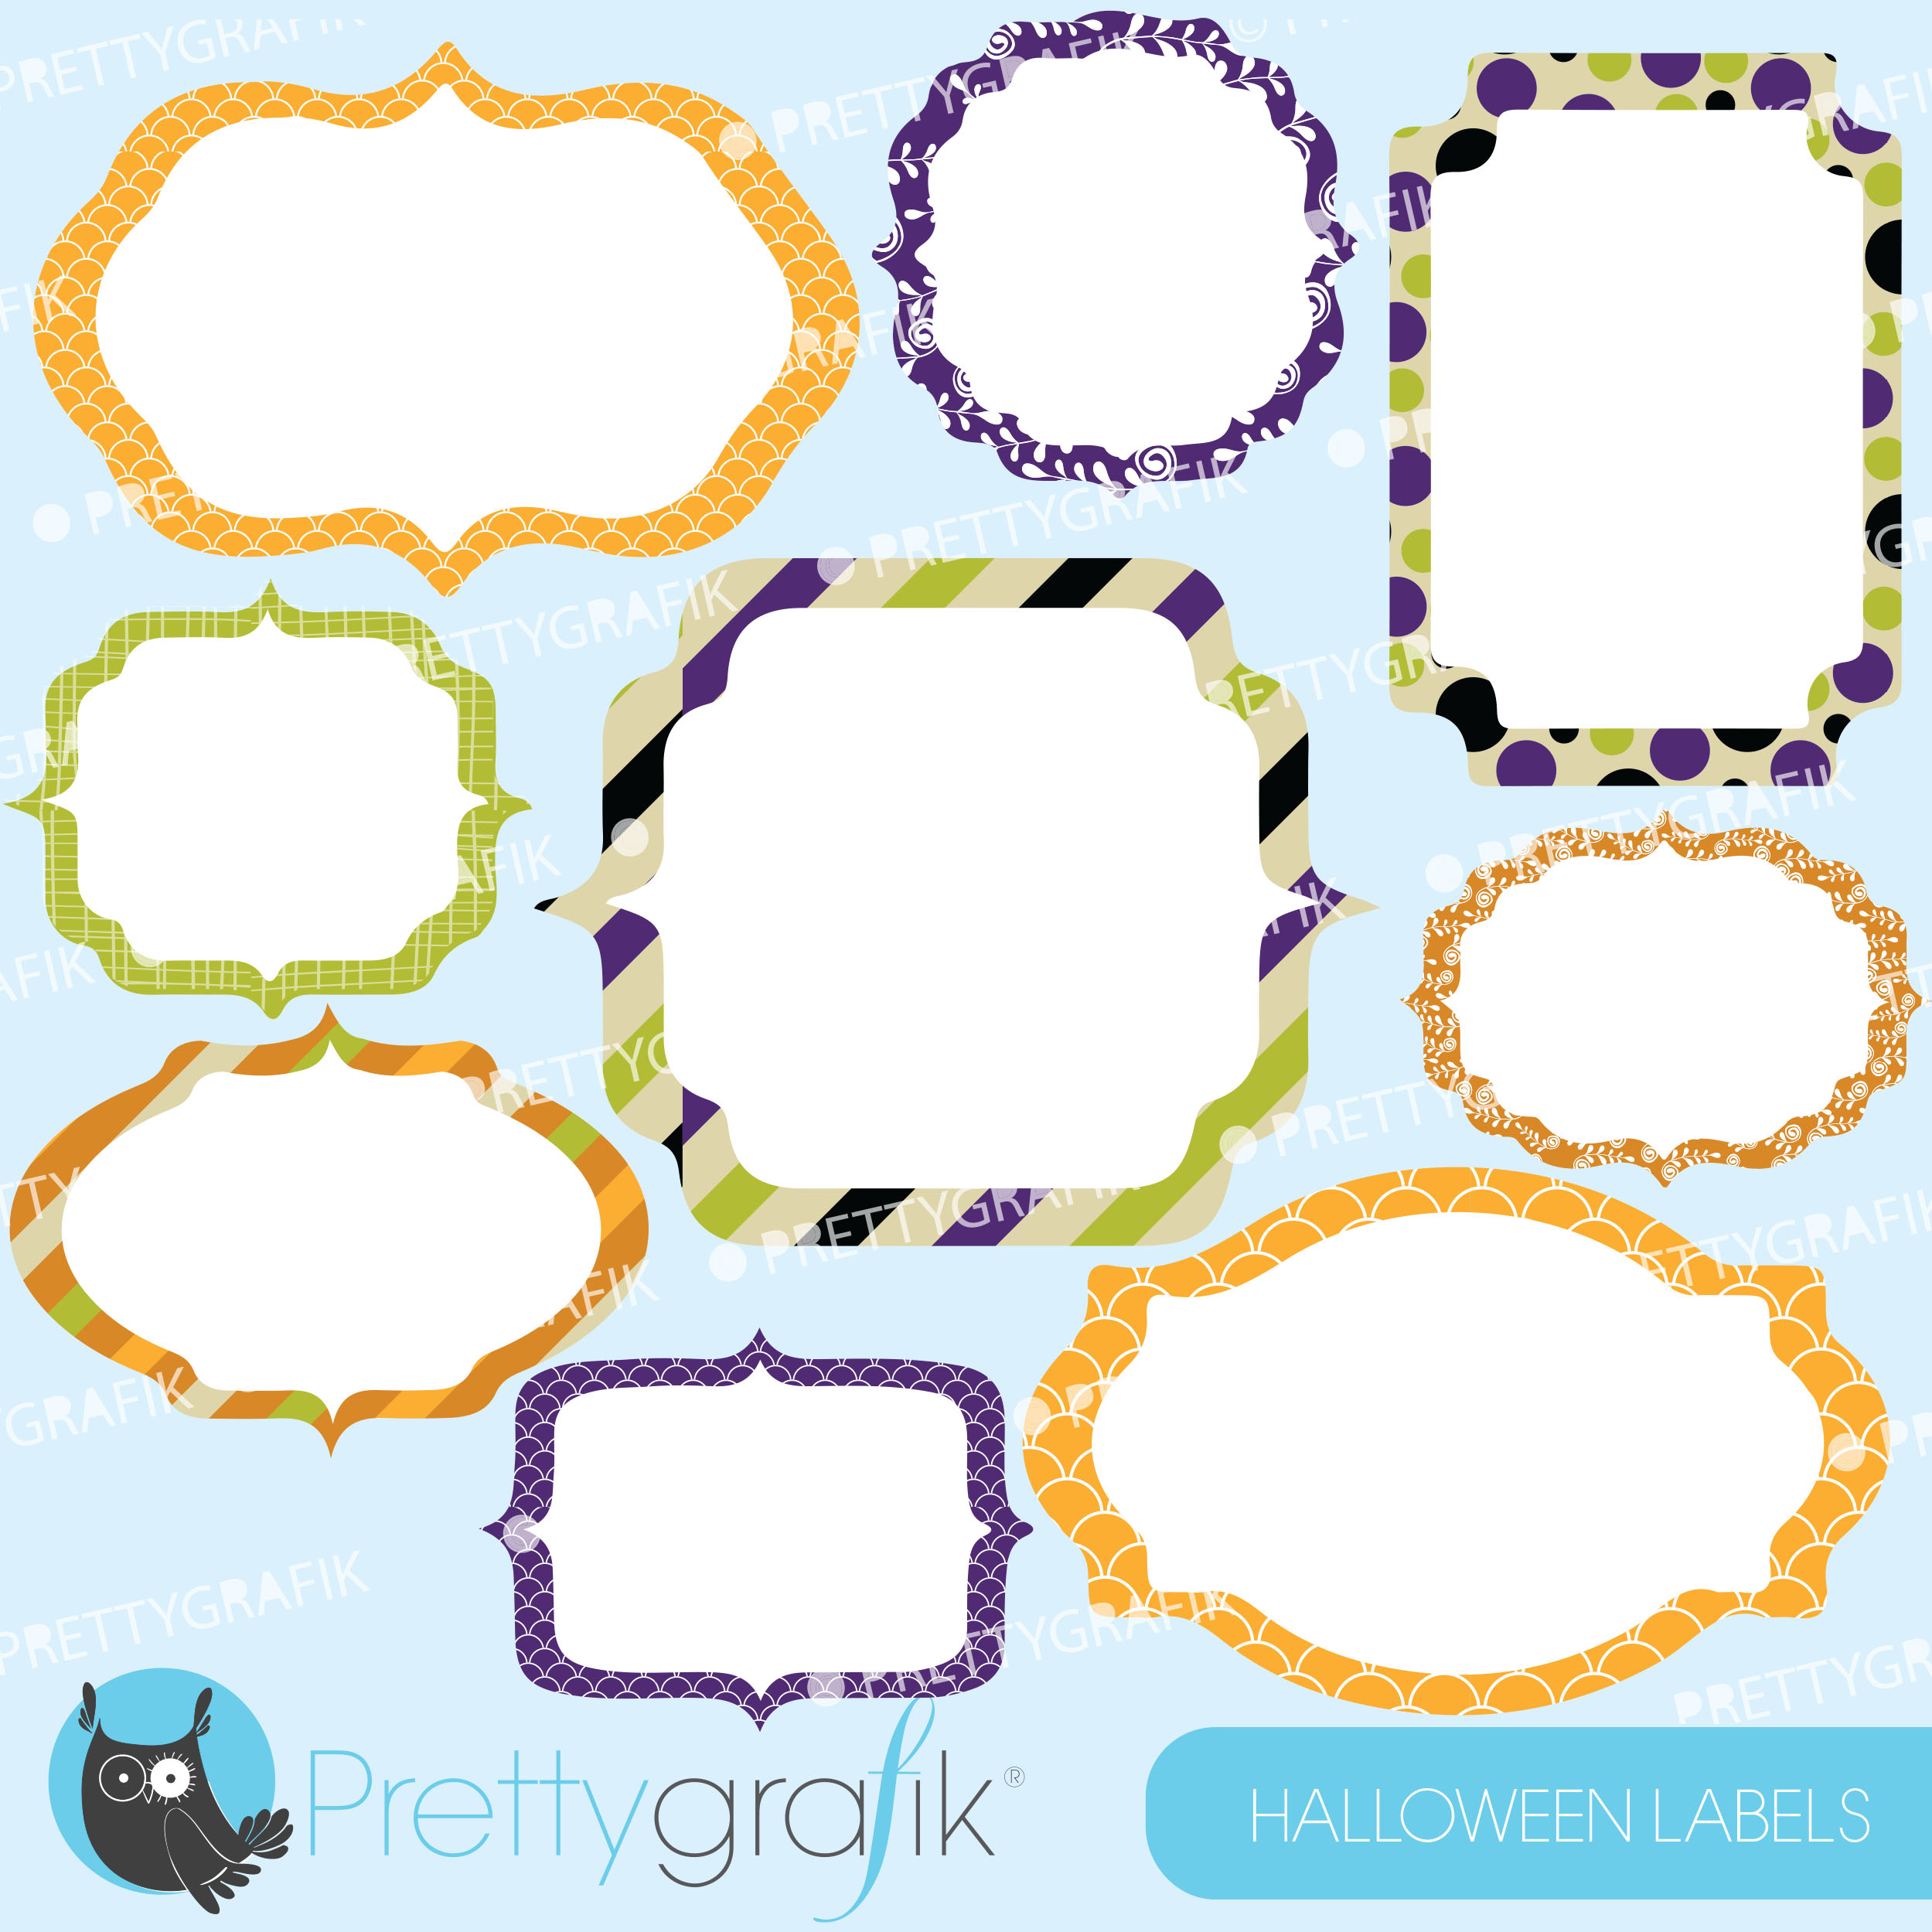 Free Labels Cliparts, Download Free Clip Art, Free Clip Art.